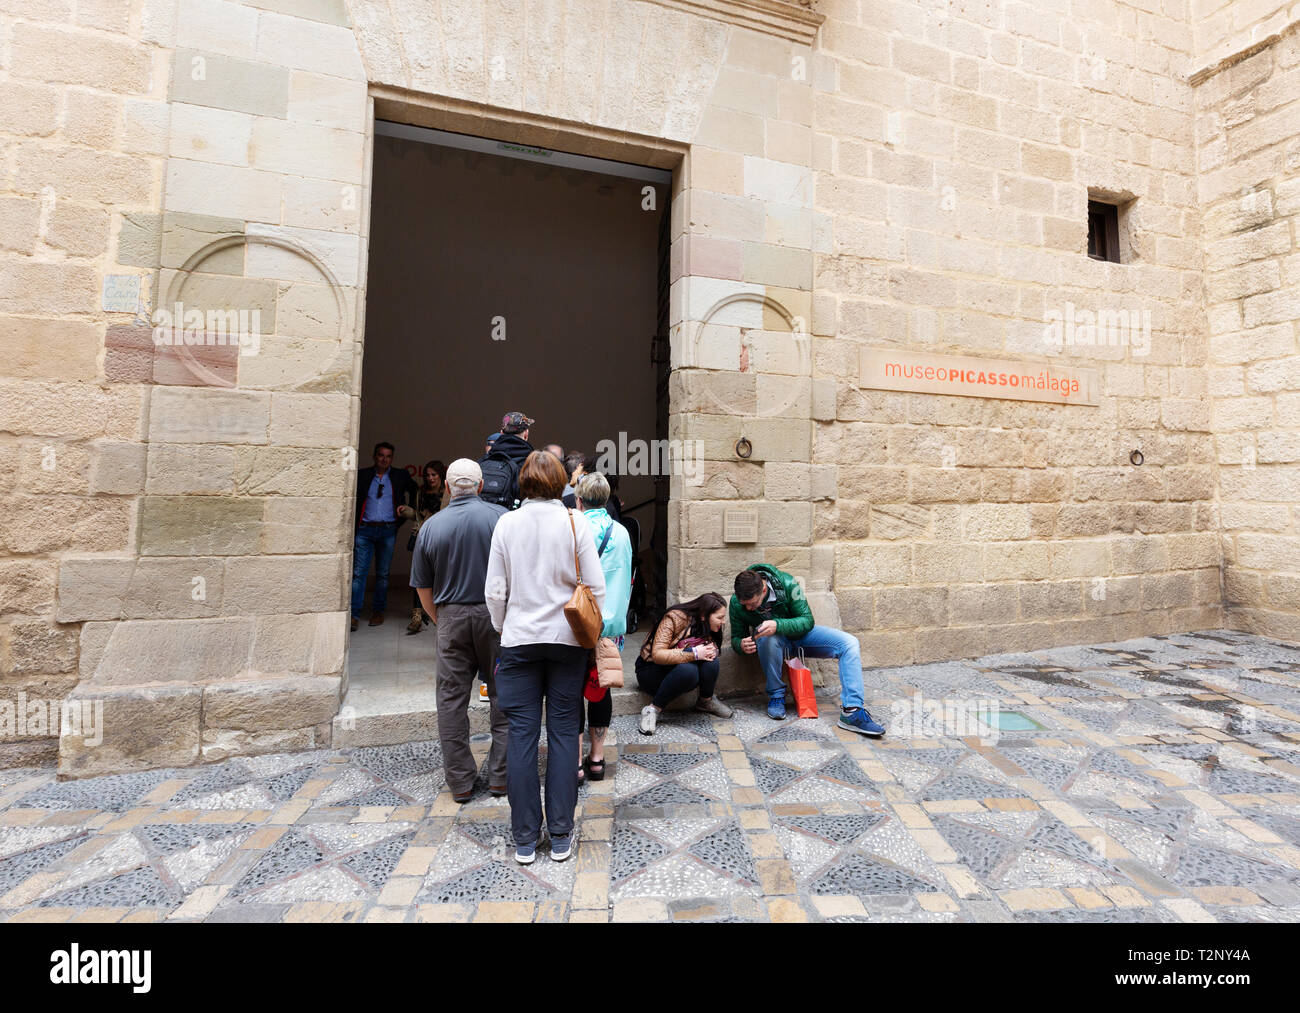 Museo Picasso Malaga.Museo Picasso Malaga People Queuing Outside To See The Paintings